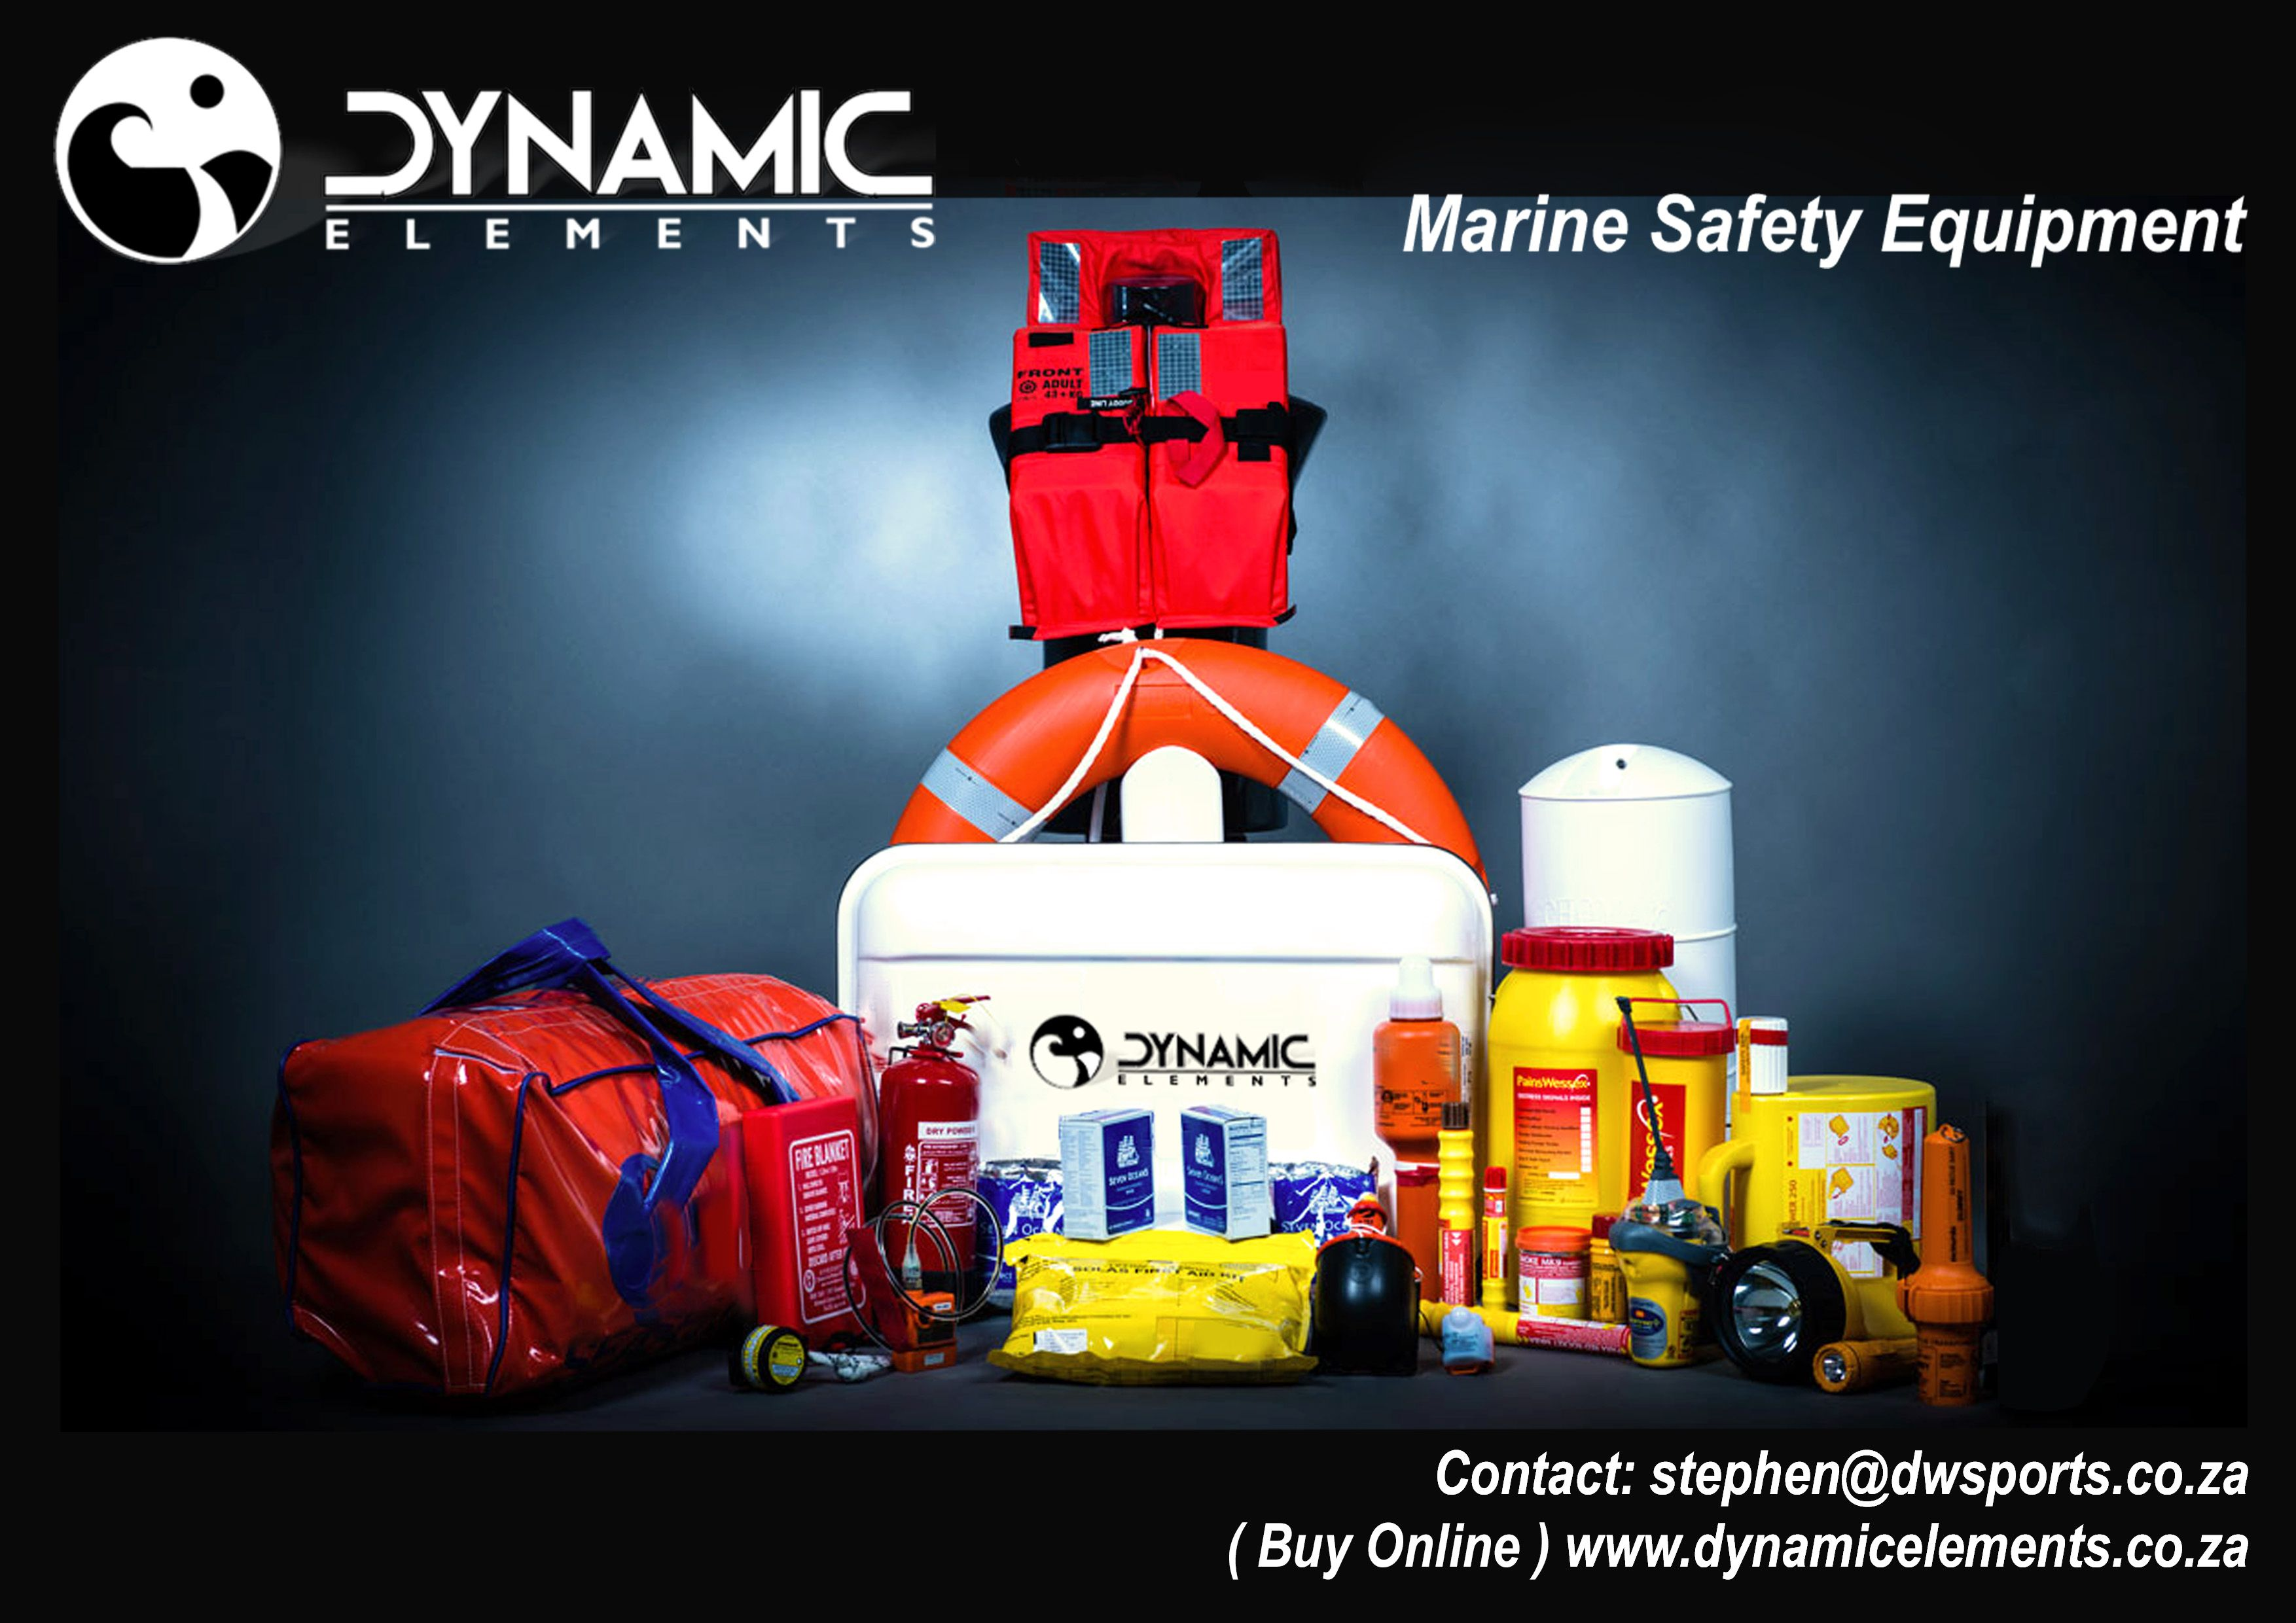 Marine Safety Equipment online at www.dynamicelements.co